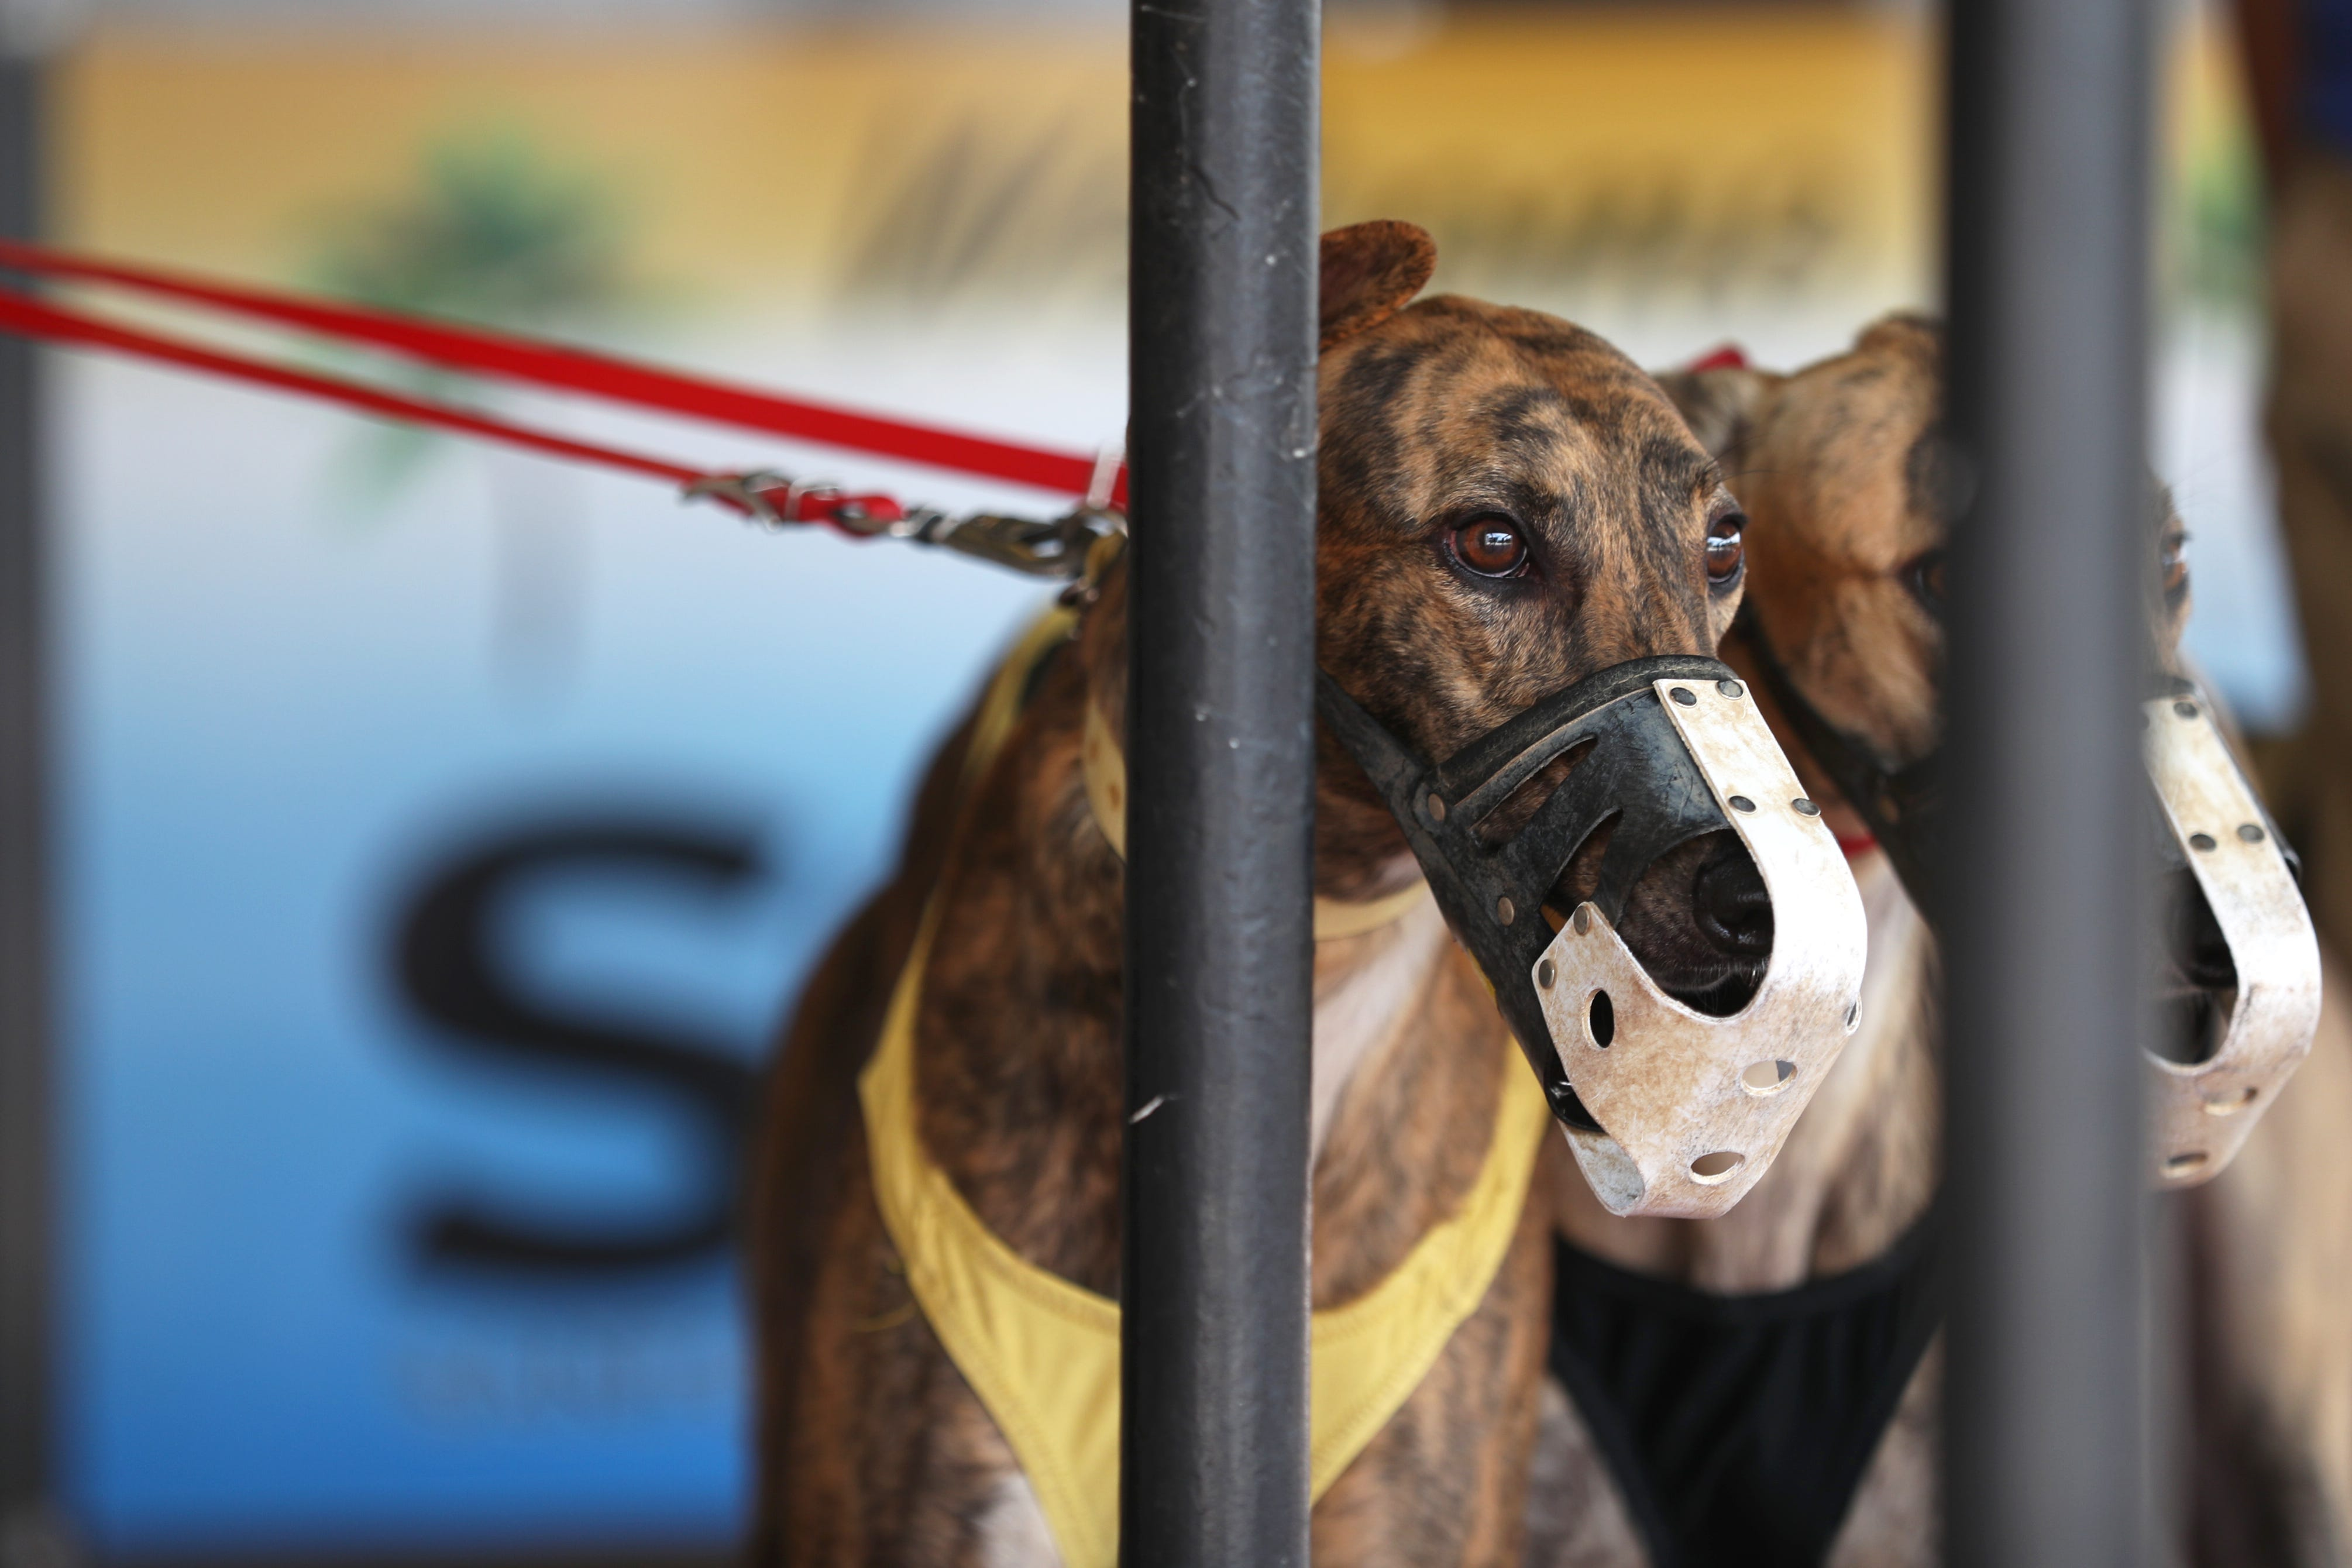 636621699660254156-Greyhounds Melbourne Greyhound Park could lose up to $250,000 per year after dog racing ban takes effect